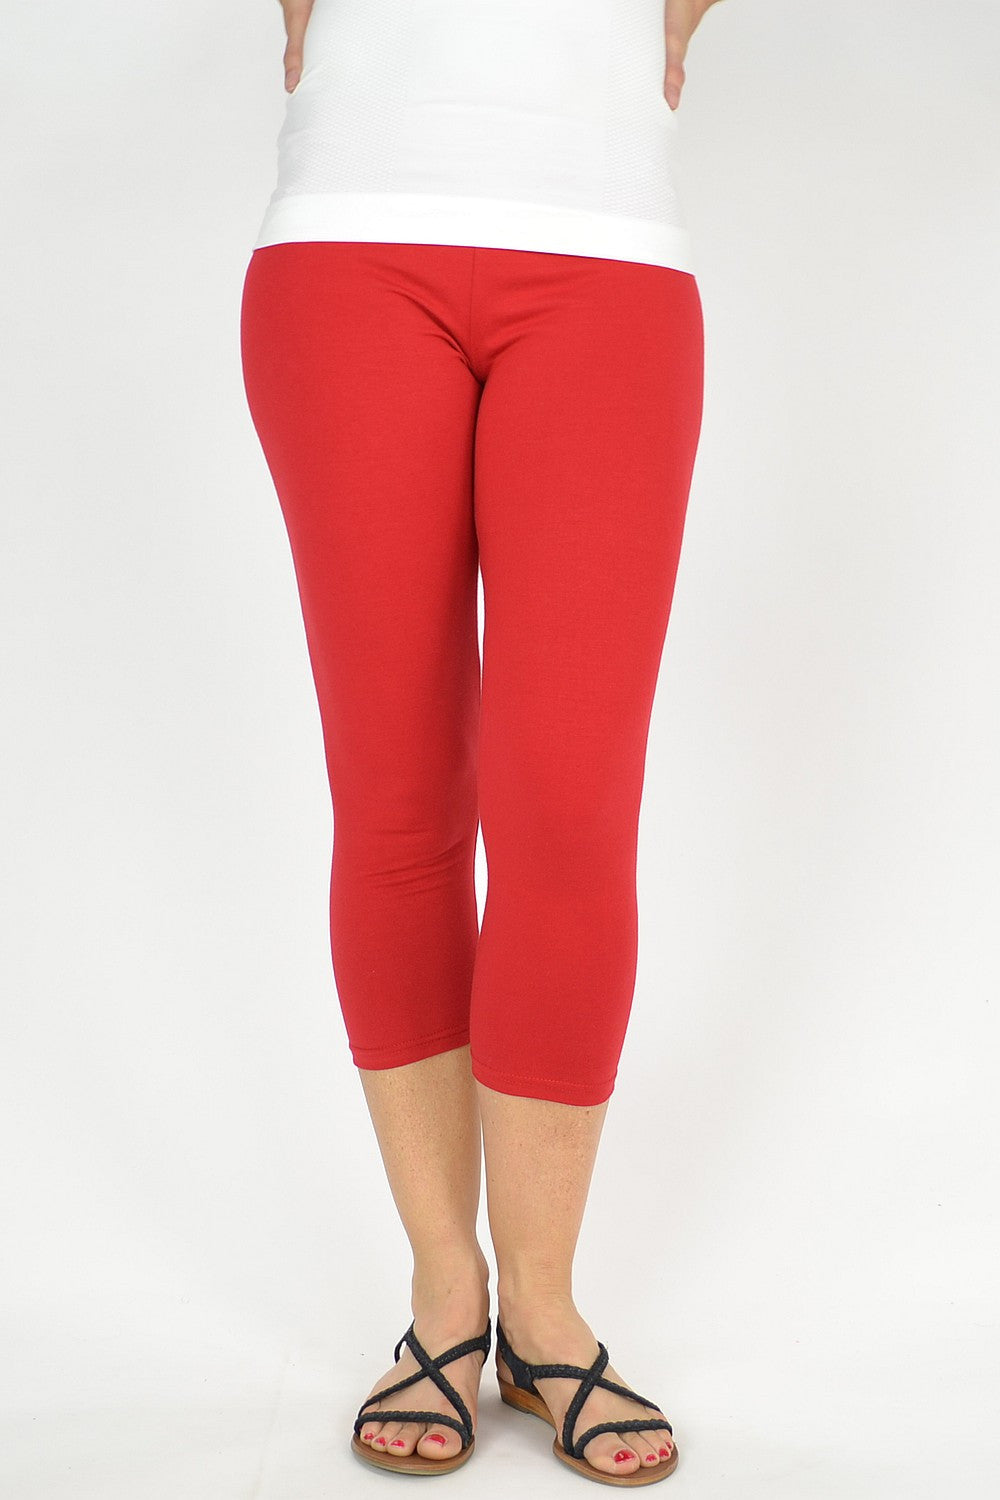 Red Cotton 3/4 leggings - at I Love Tunics @ www.ilovetunics.com = Number One! Tunics Destination